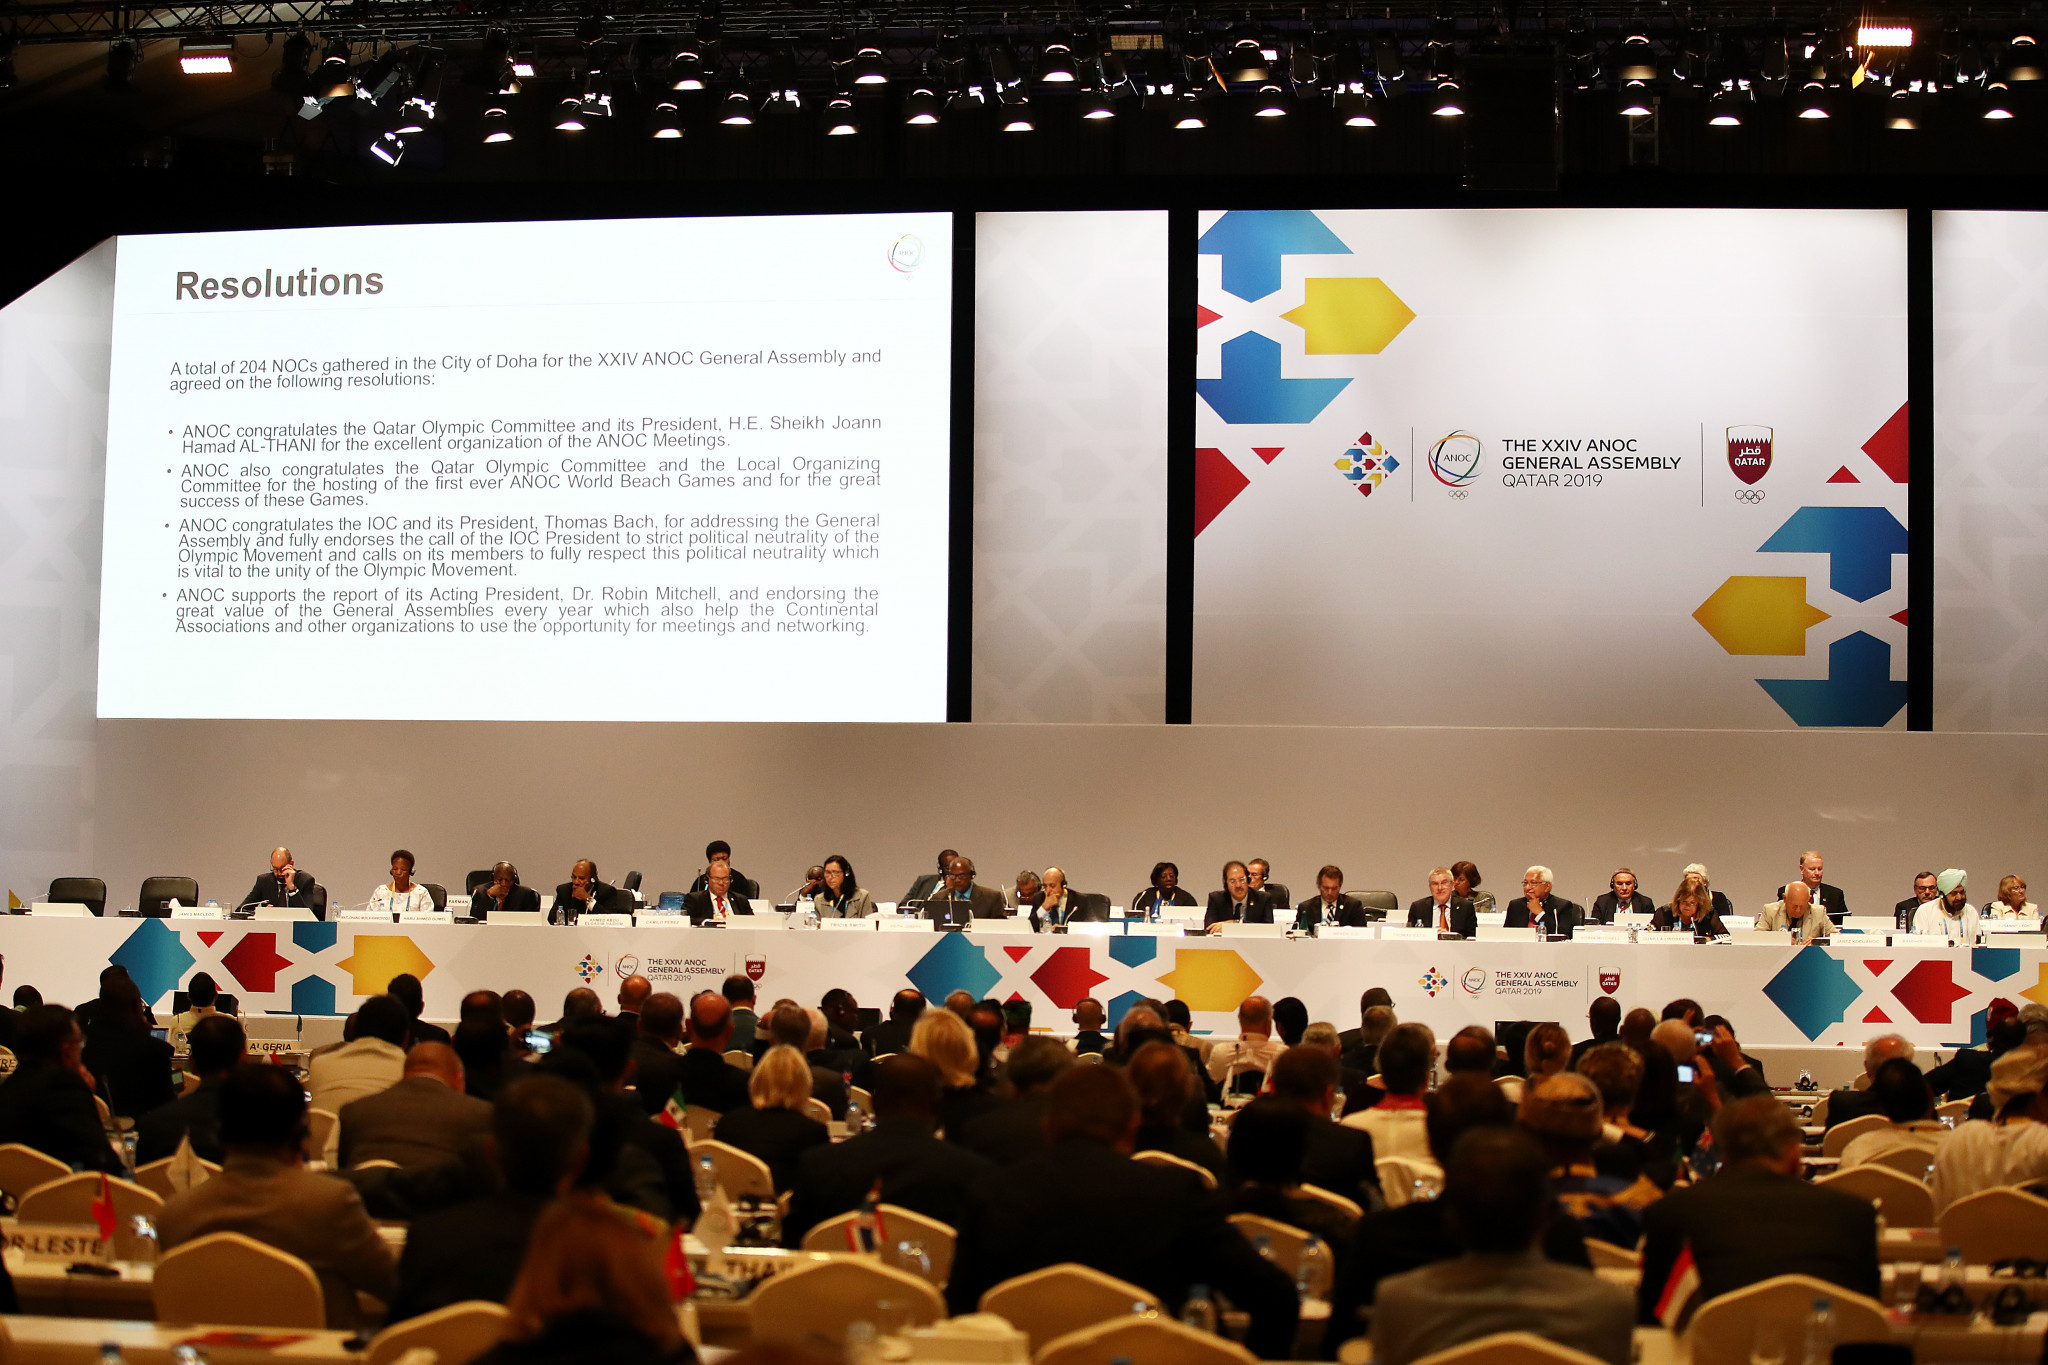 ANOC General Assemblies are notorious for their displays of adulation towards the leadership ©Getty Images